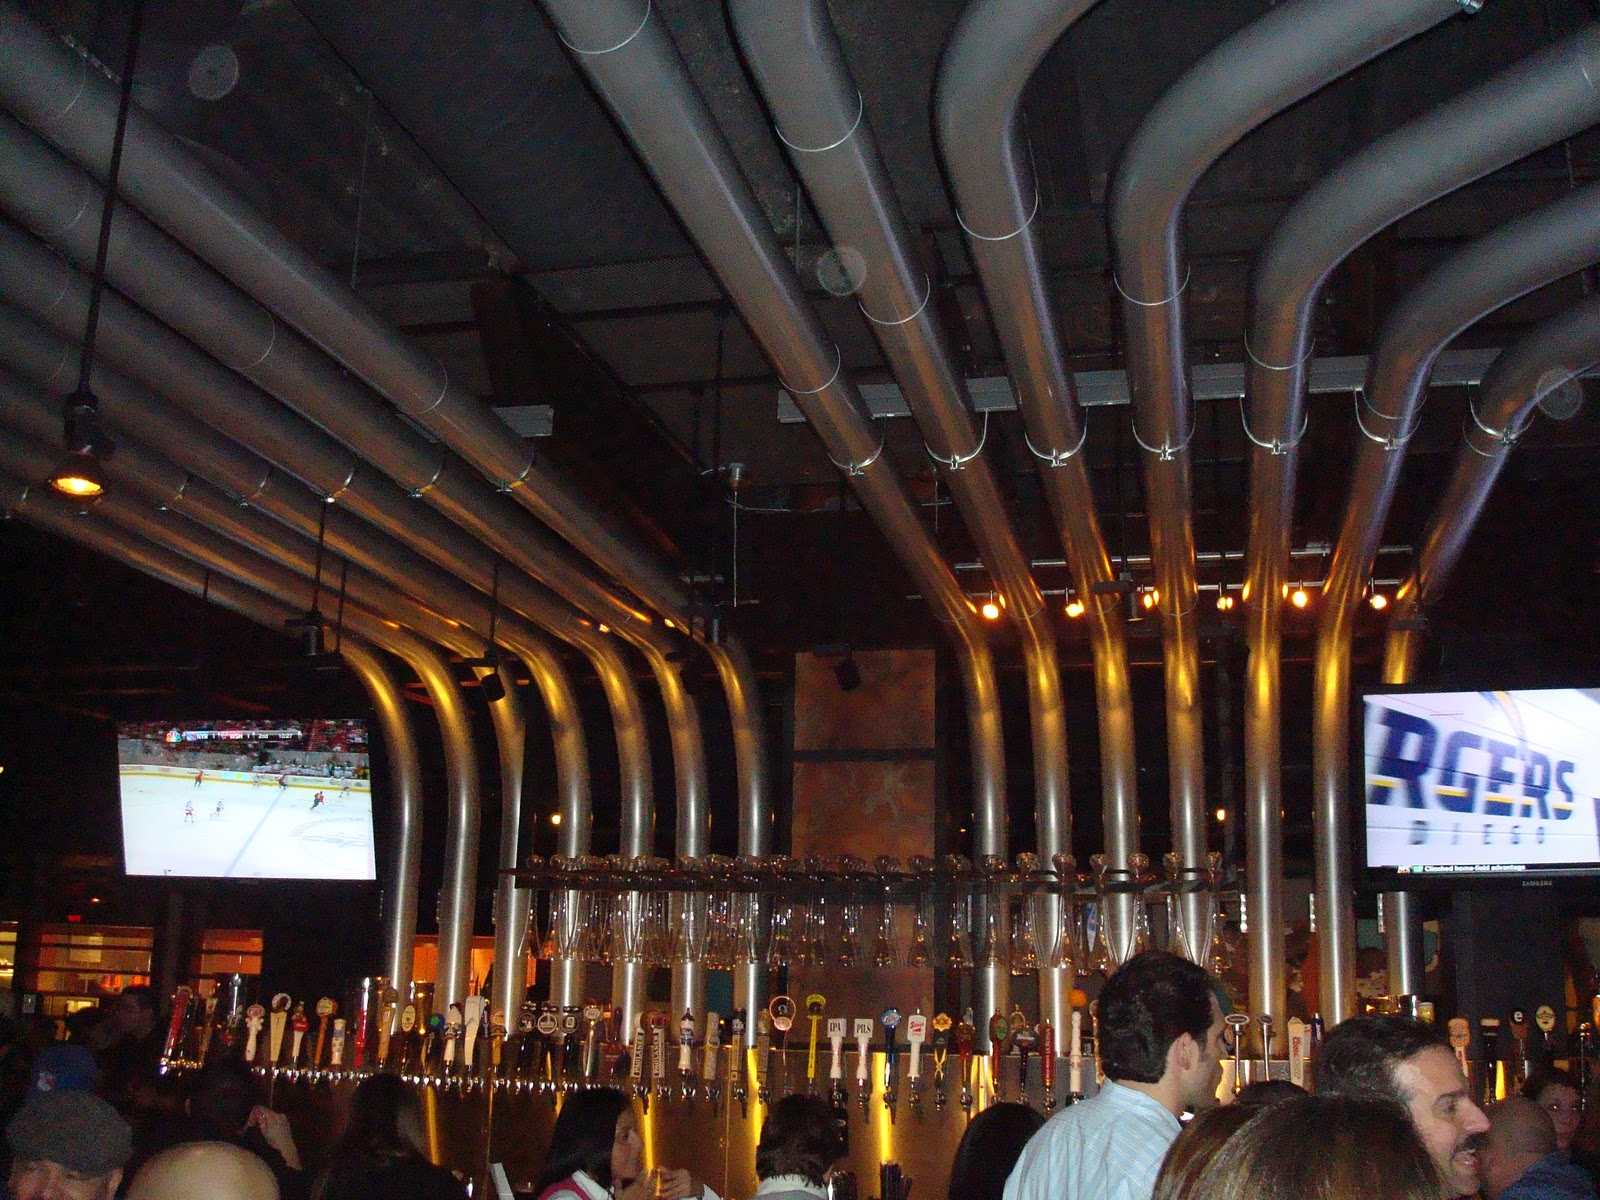 Yard house yonkers yonkers ny : Basketball shoes jordans cheap